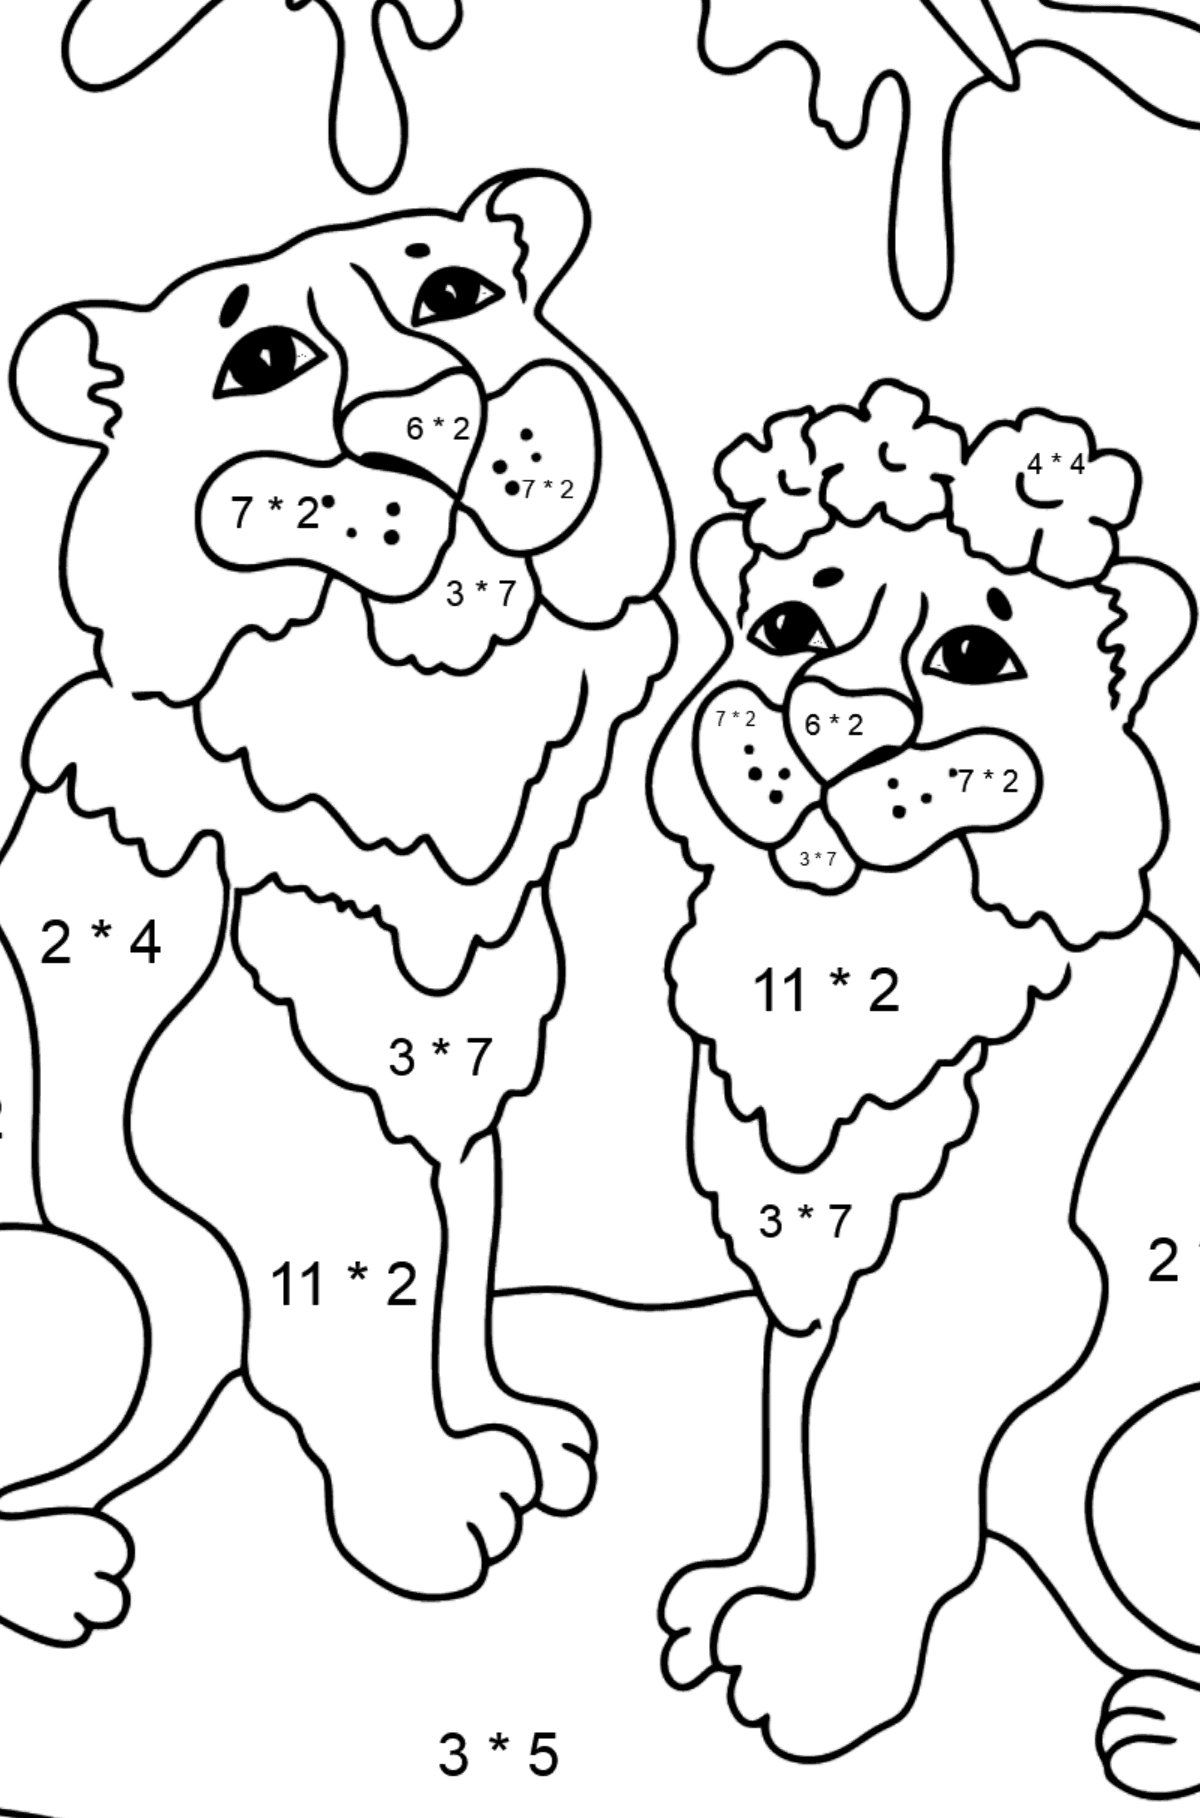 Coloring Page - Tigers with Butterflies - Math Coloring - Multiplication for Kids